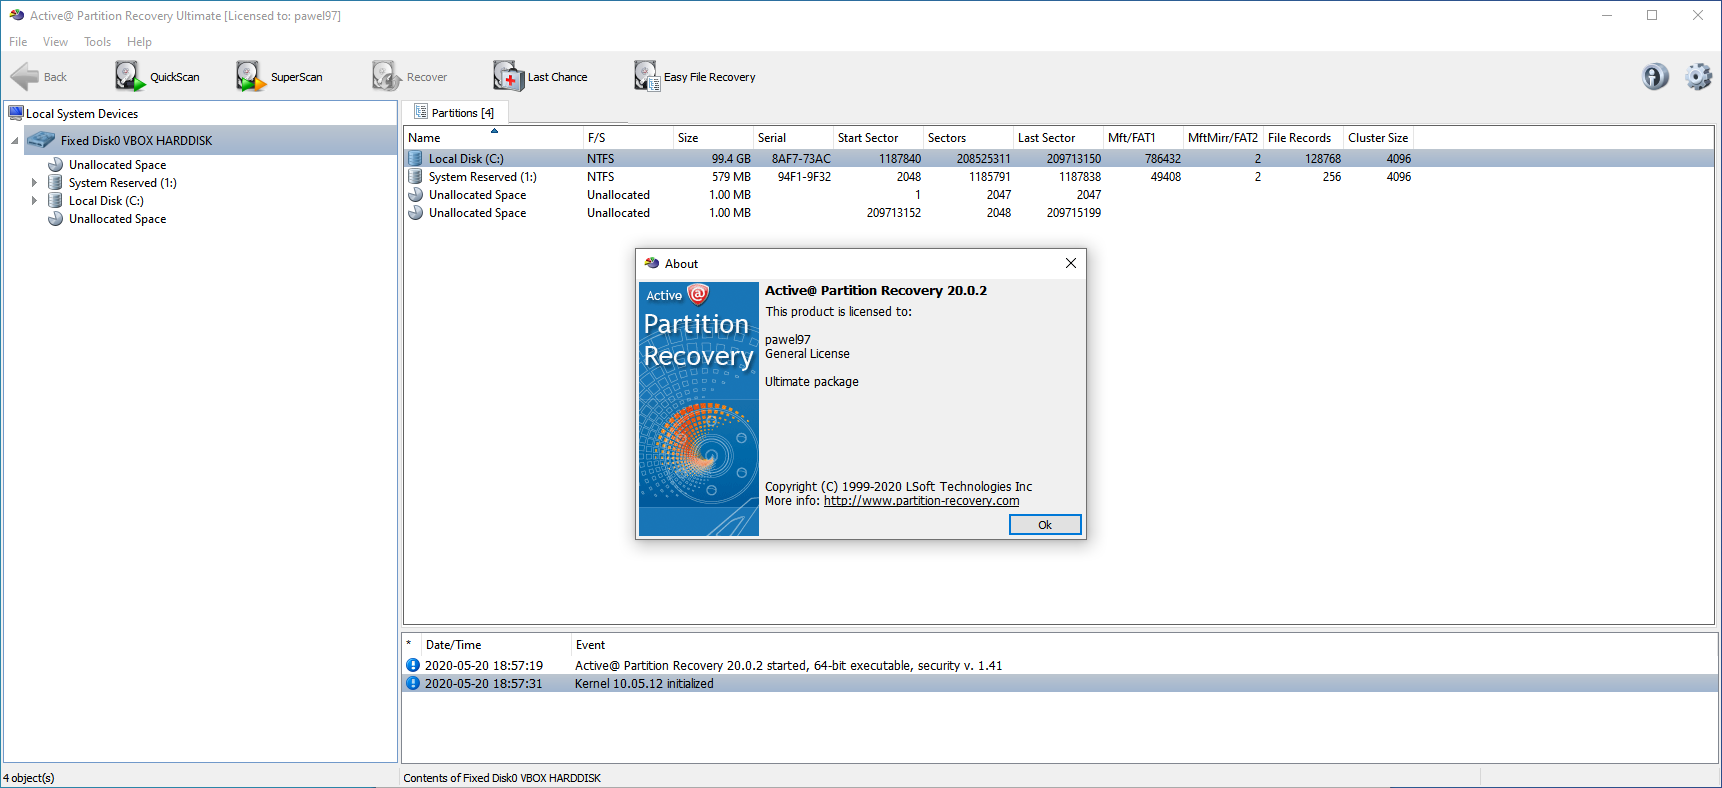 activepartitionrecovery20.0.2